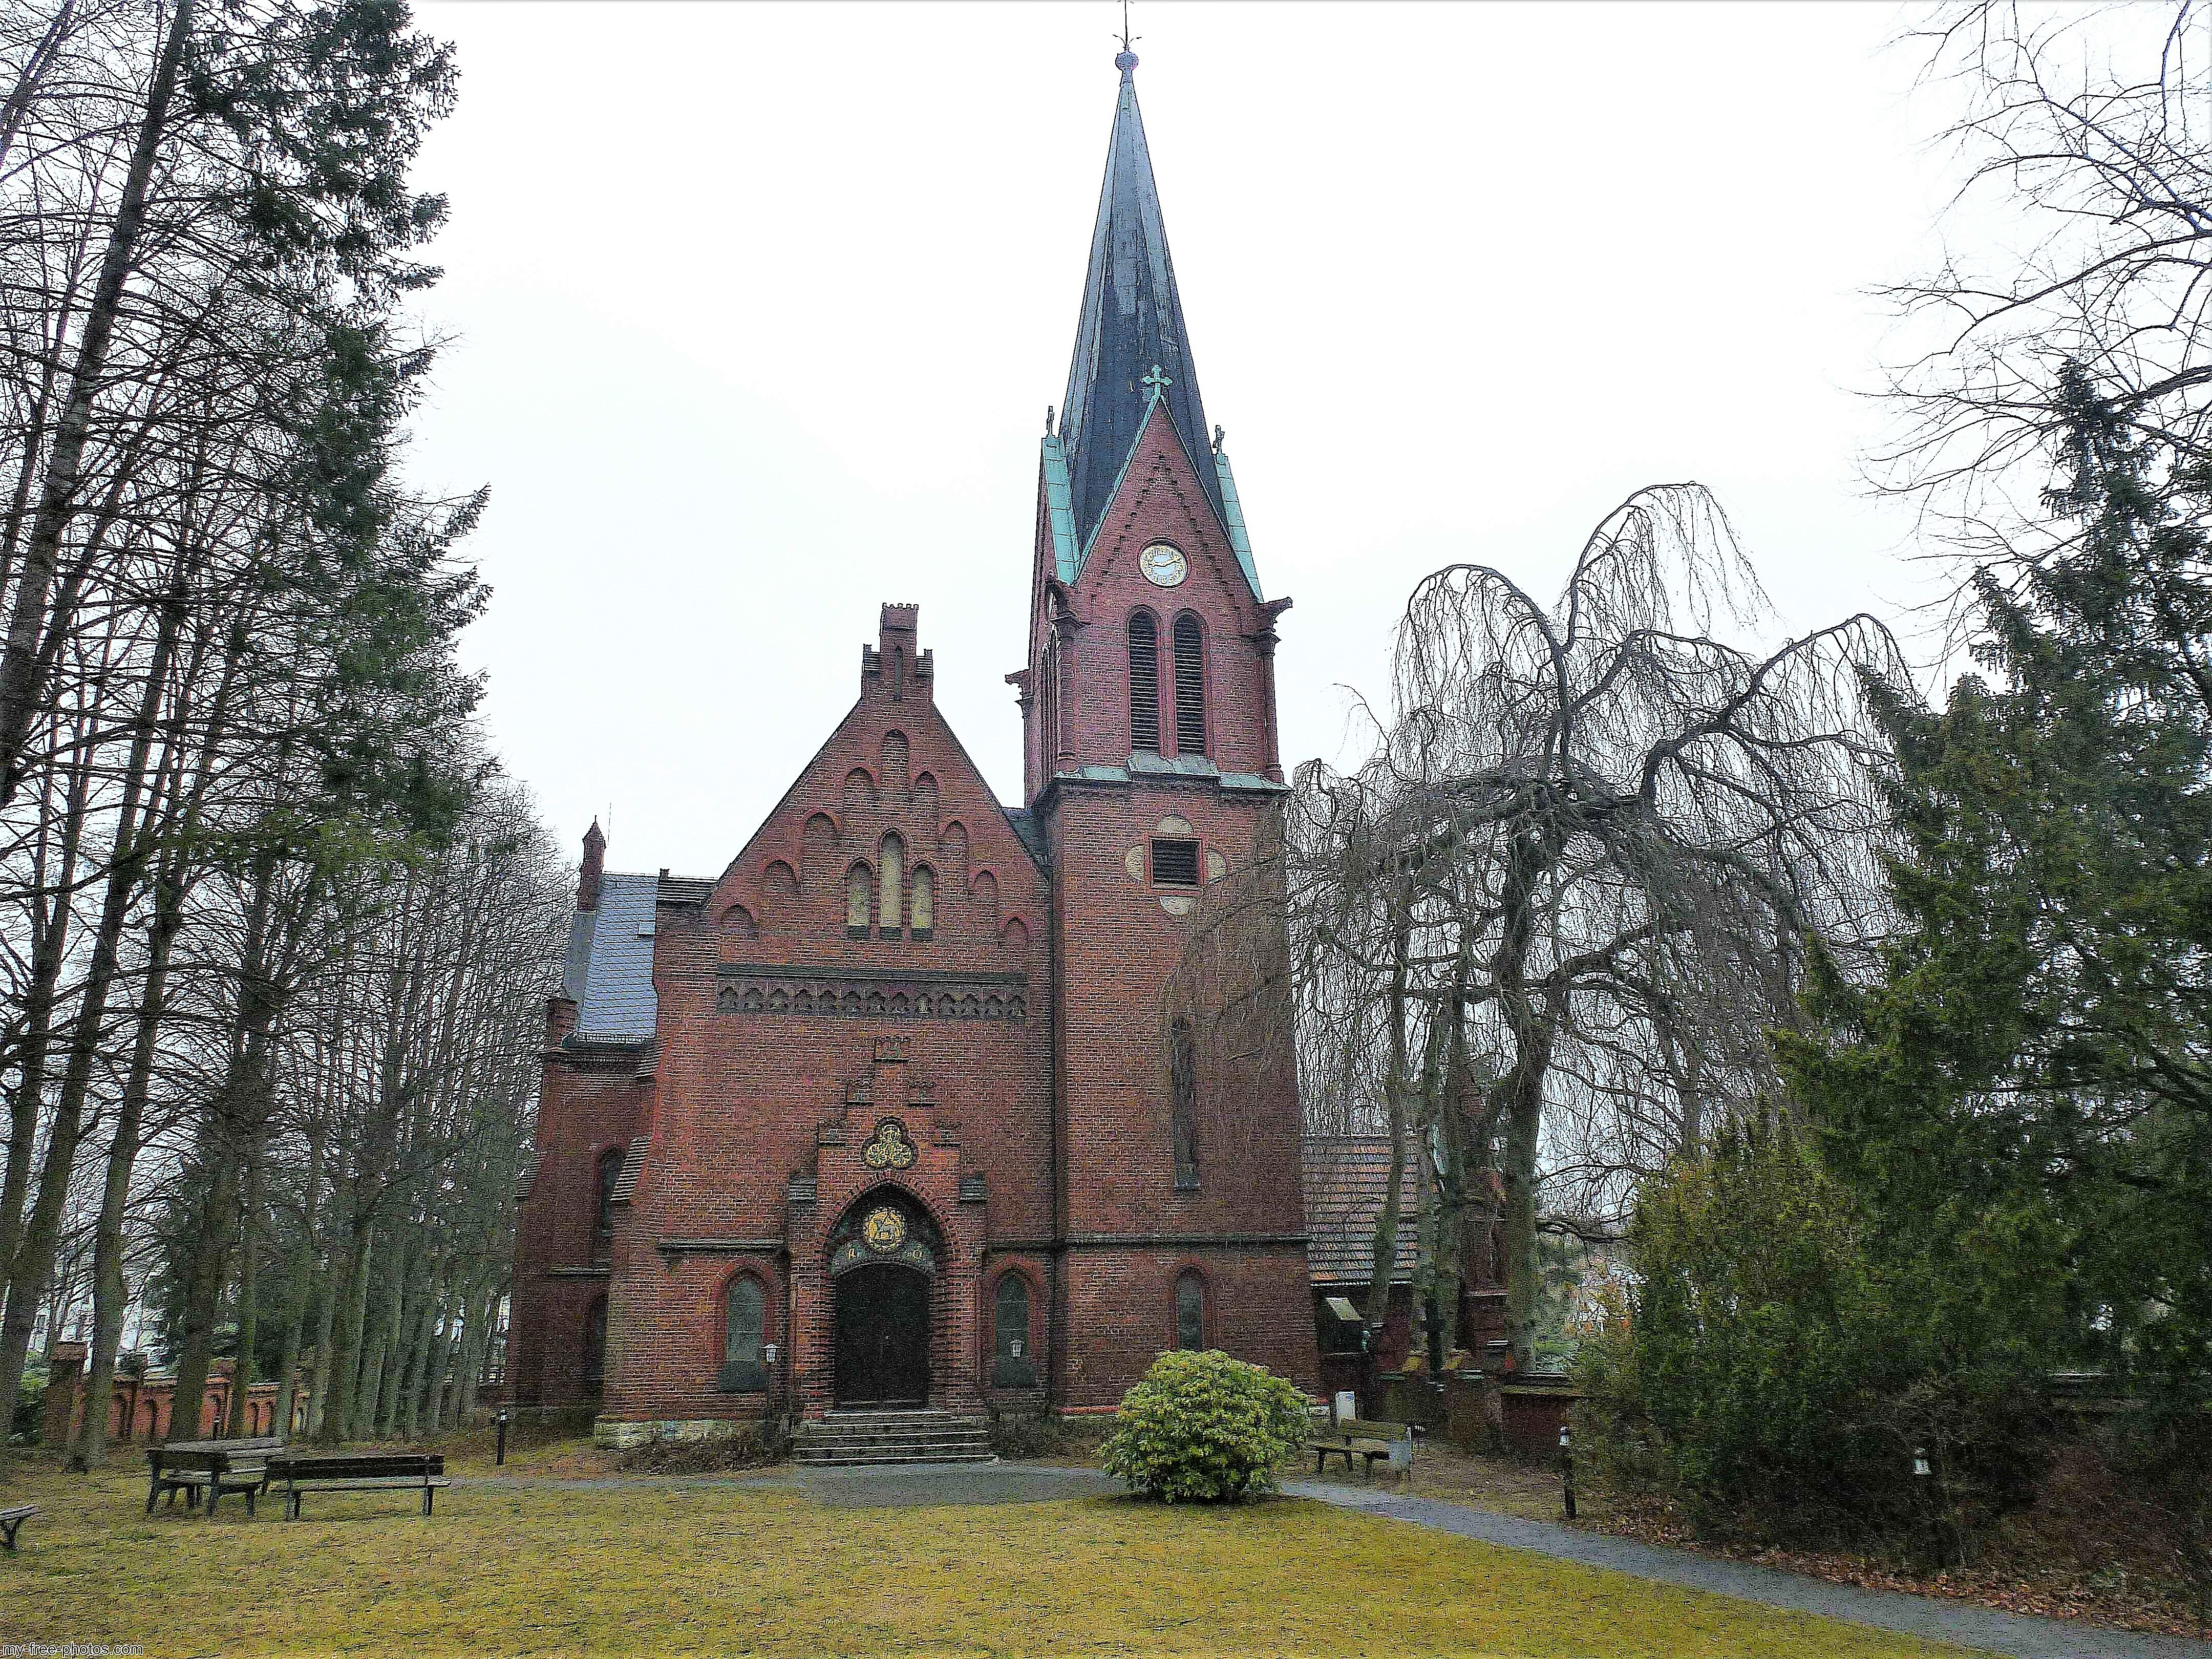 Andreaskirche in Berlin